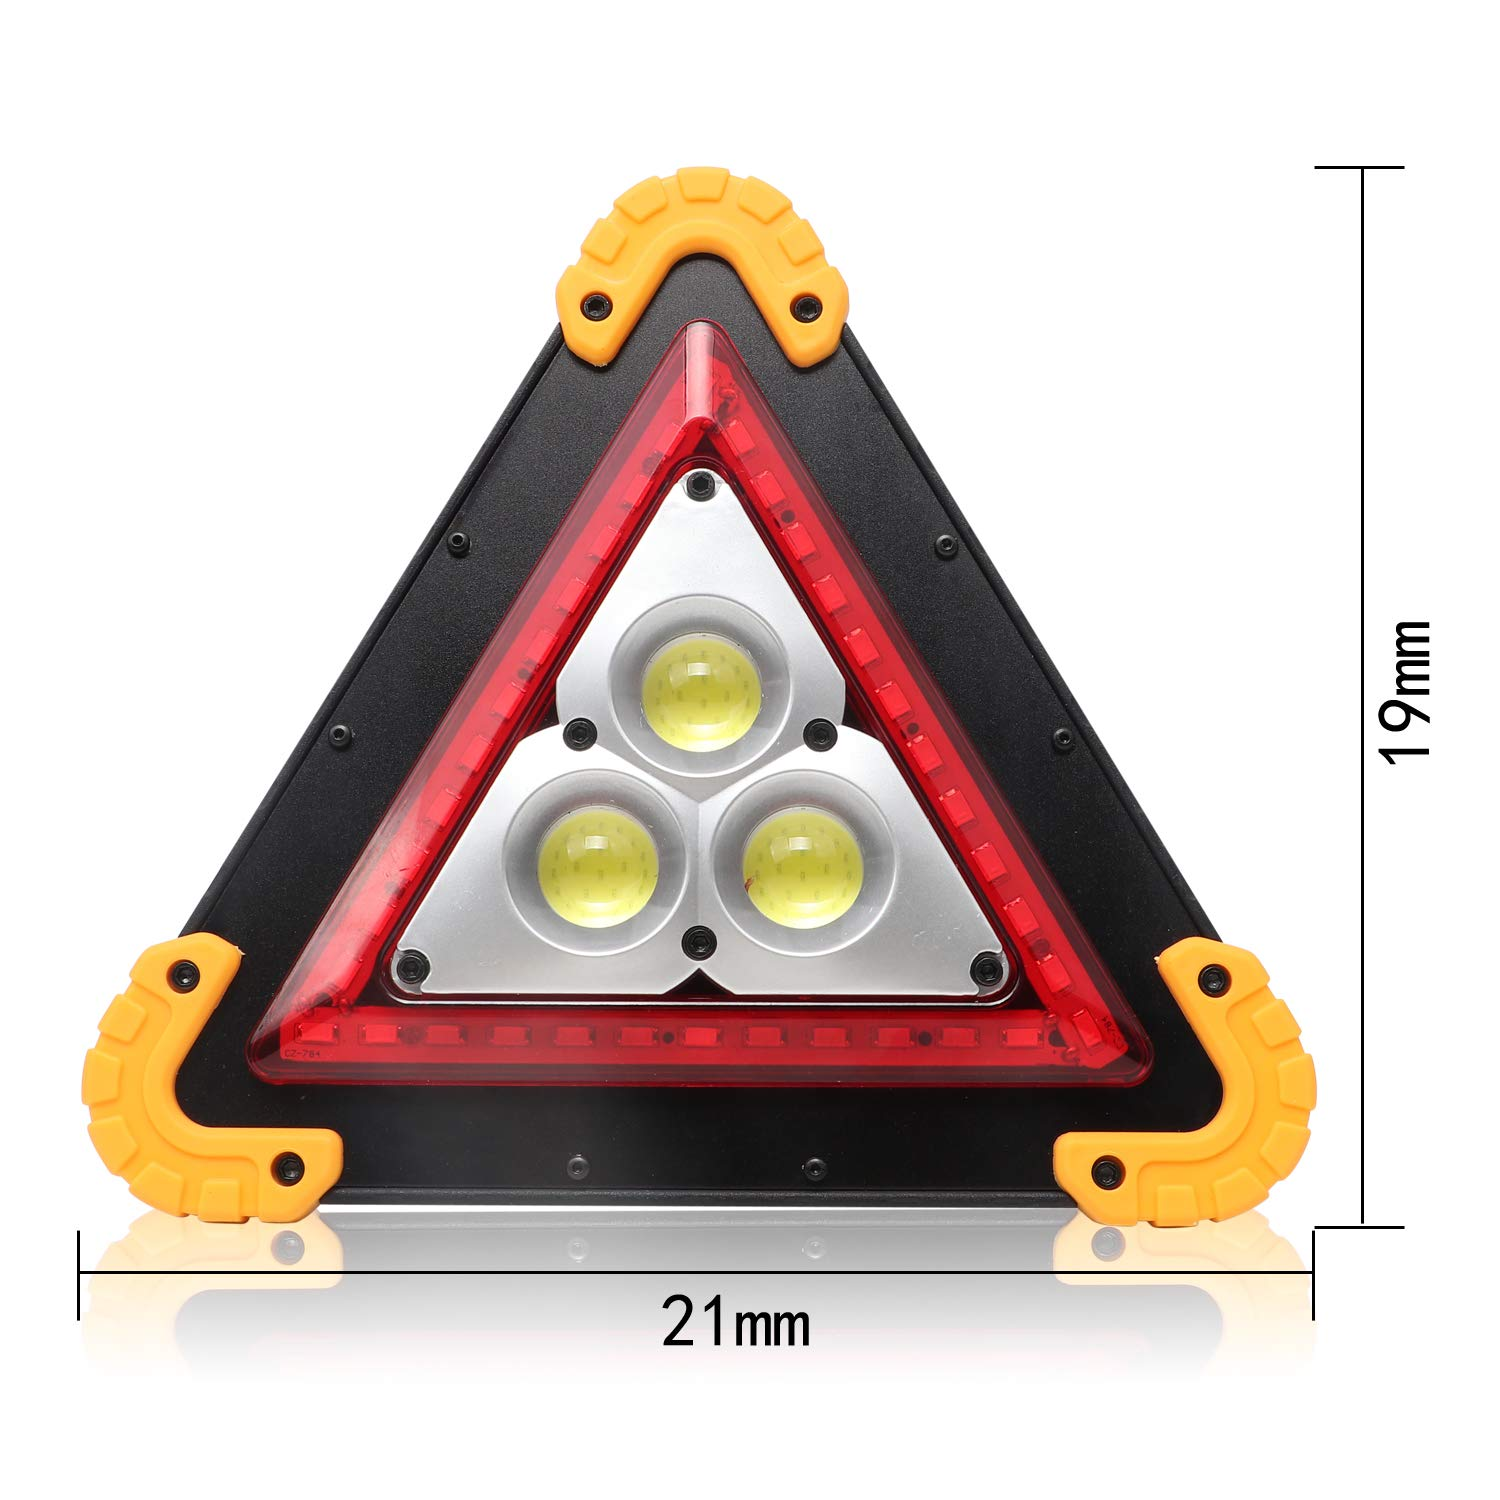 Huini Triangles Emergency Light Car Breakdown Assistance LED Warning Light 4 Modes USB Rechargeable Power Bank Function Waterproof for Emergency,Car repairing,Camping,Hiking,Fishing,